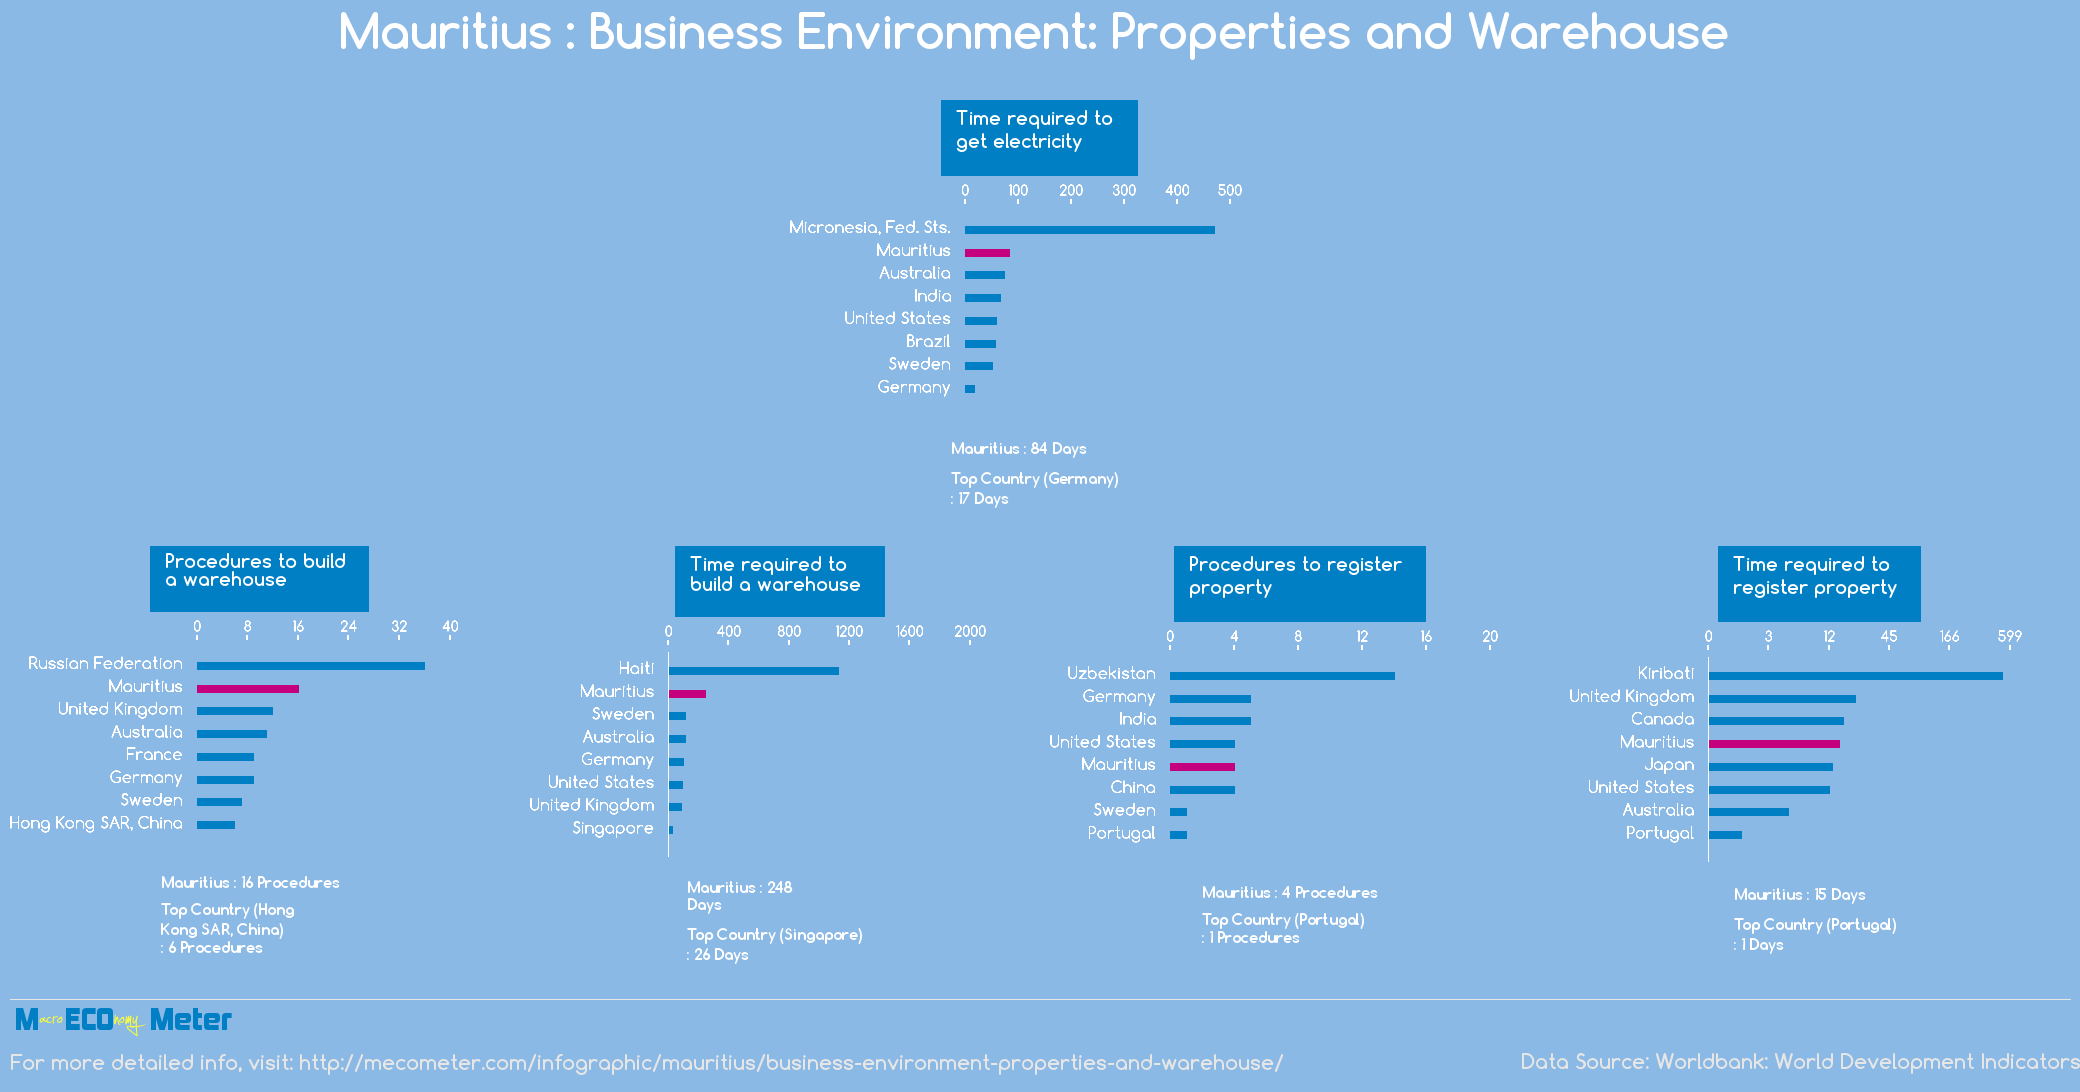 Mauritius : Business Environment: Properties and Warehouse